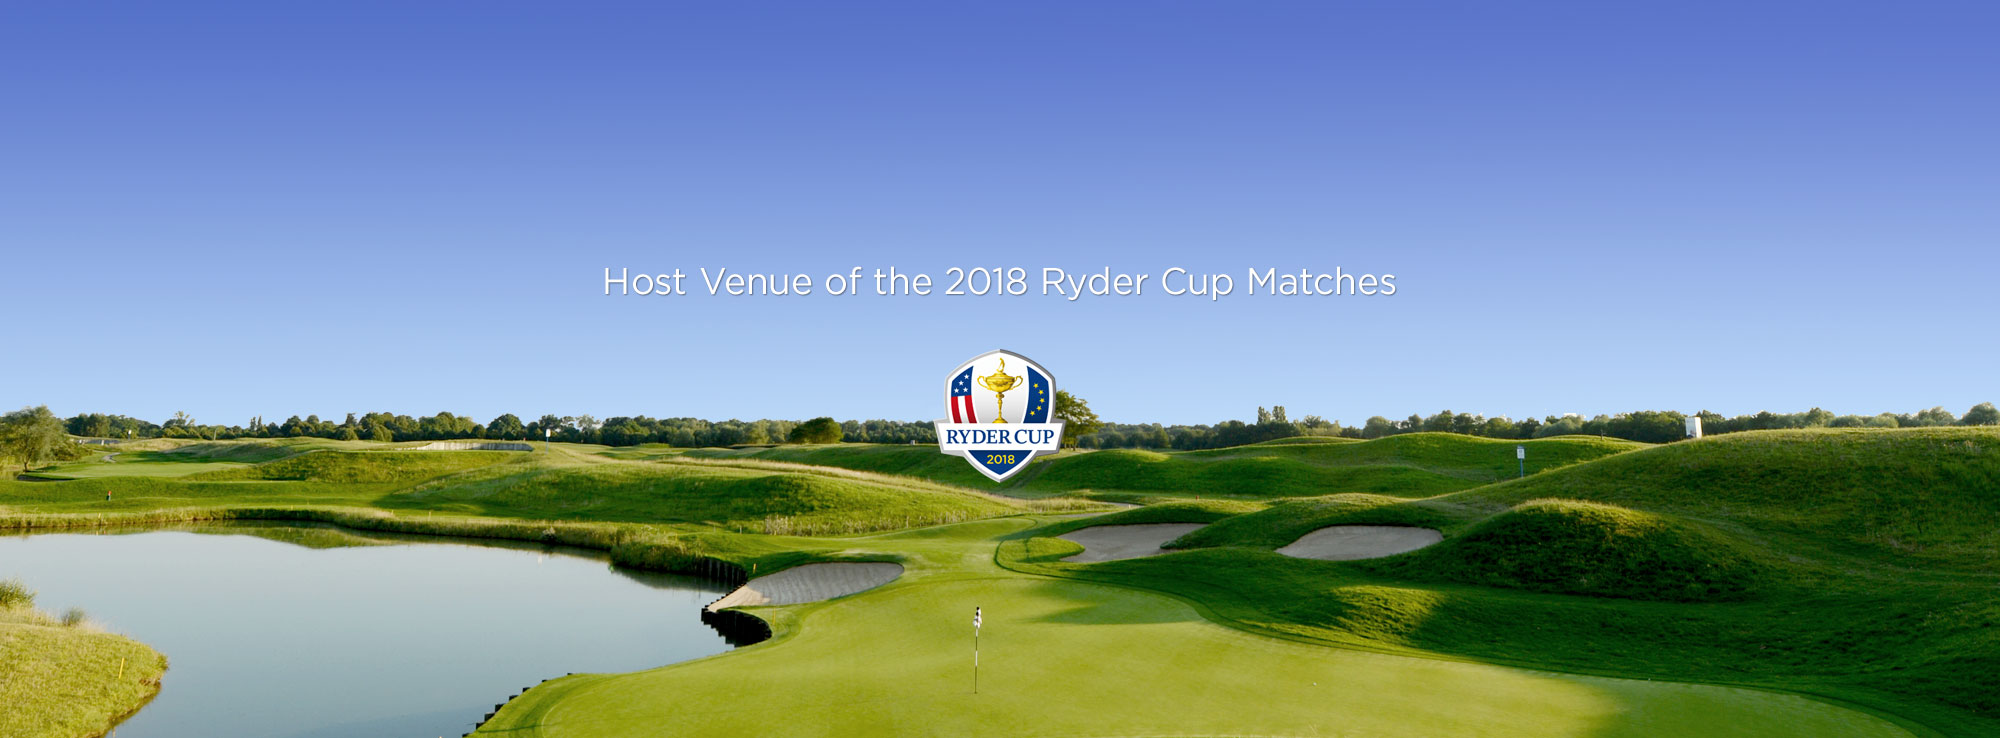 Ryder Cup 2018 - Le Golf National